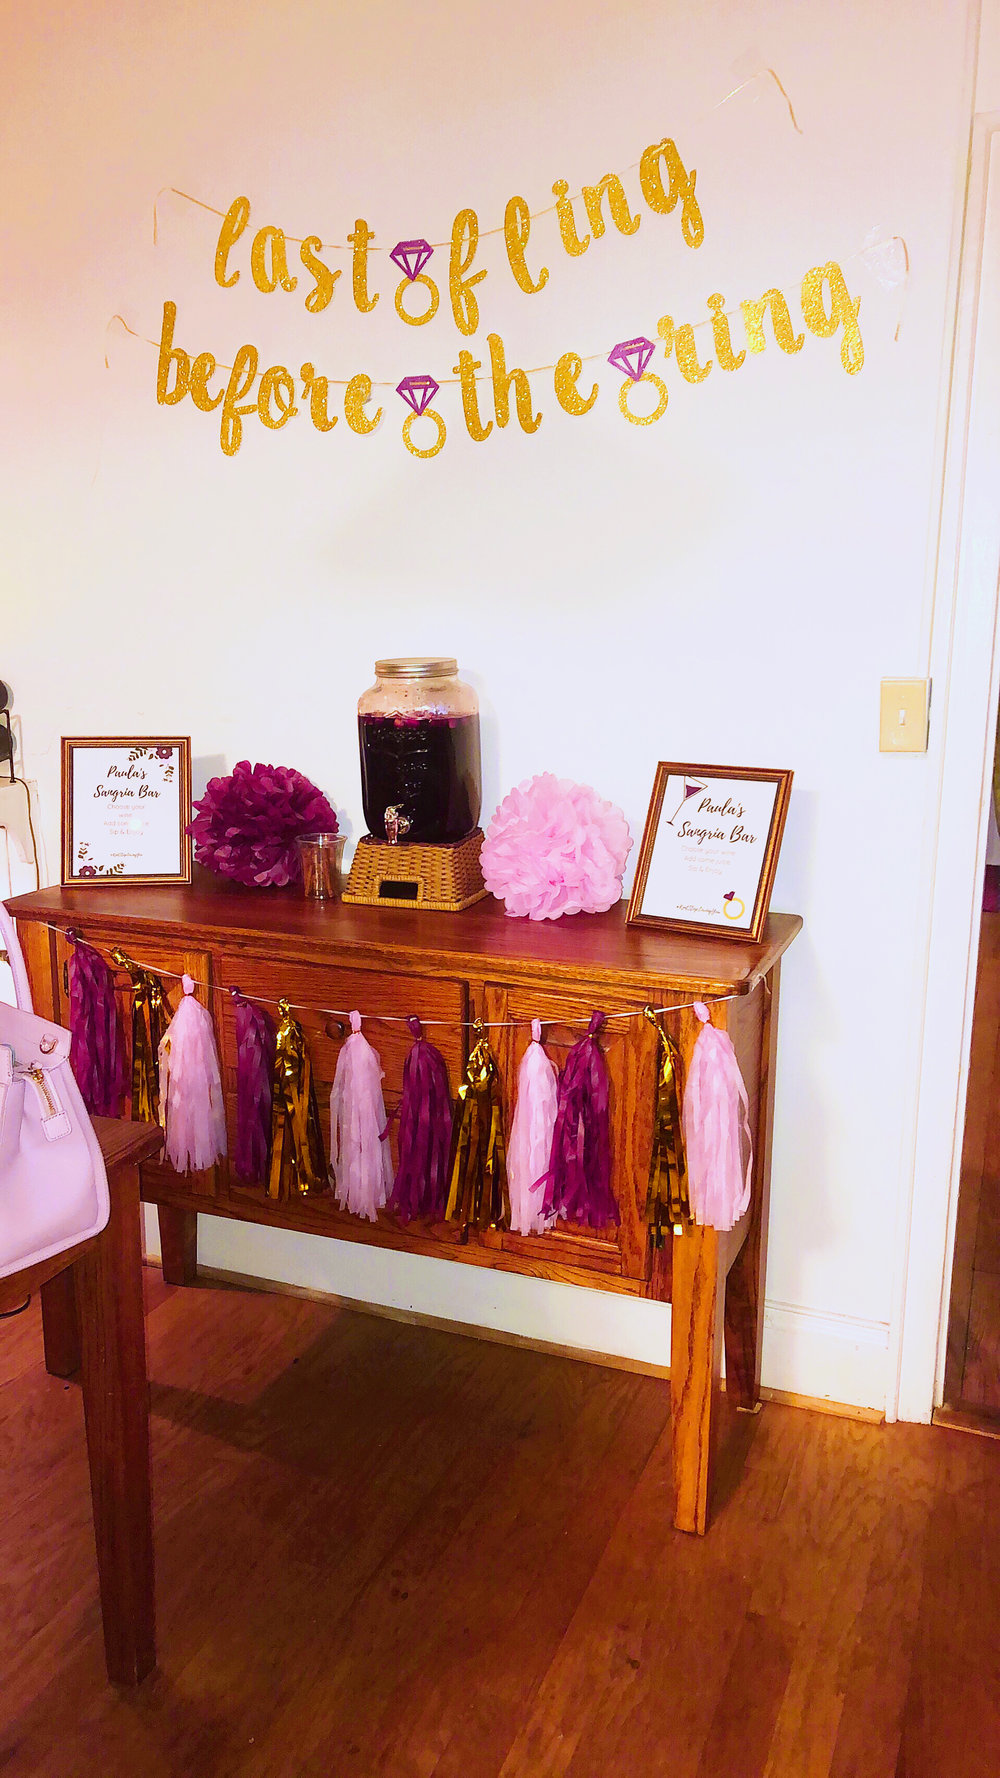 well with brielle wellwithbrielle.com bachelorette party last fling before the ring bridal party wedding event